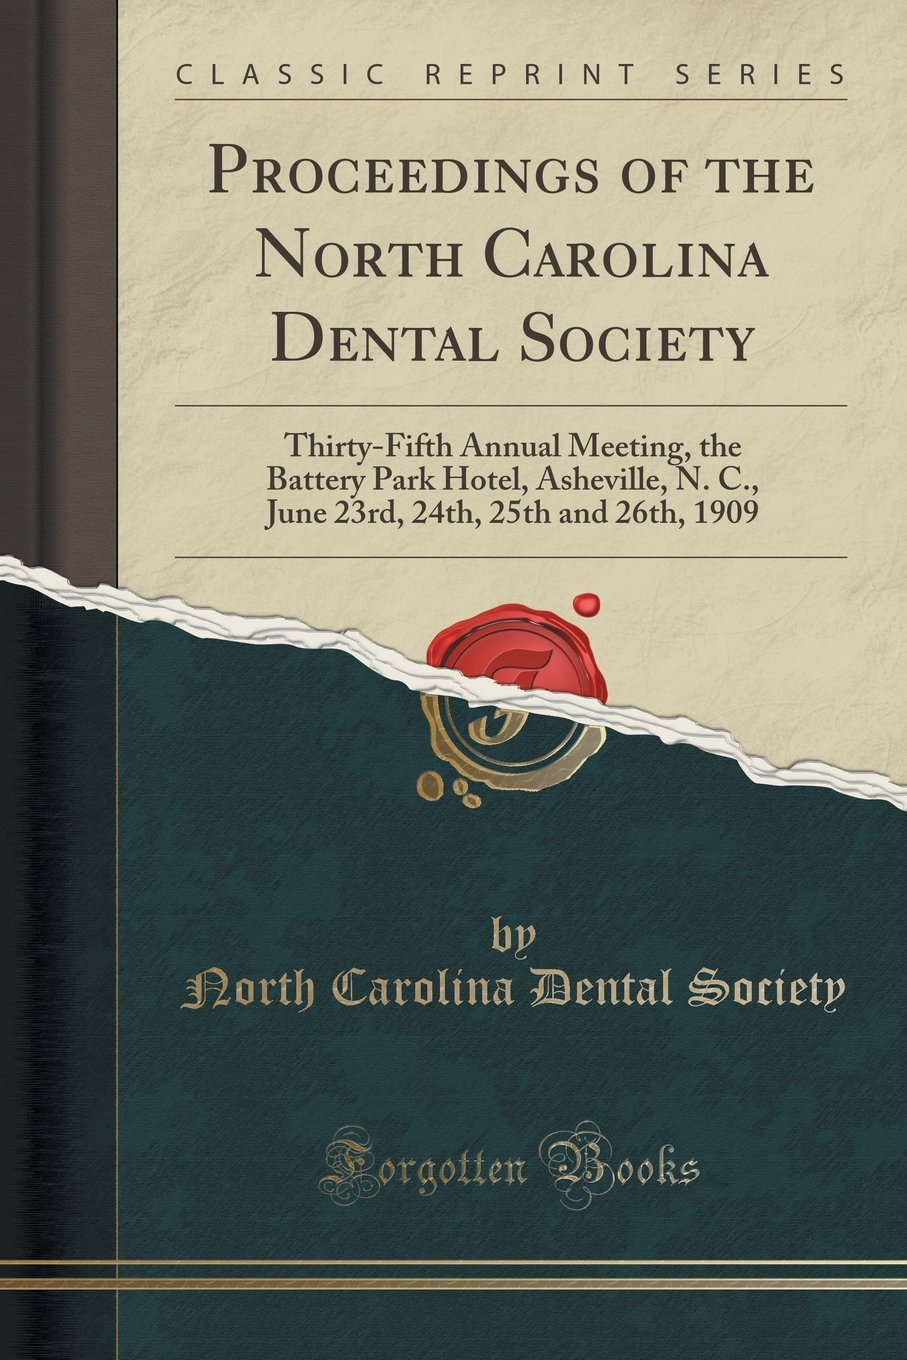 Download Proceedings of the North Carolina Dental Society: Thirty-Fifth Annual Meeting, the Battery Park Hotel, Asheville, N. C., June 23rd, 24th, 25th and 26th, 1909 (Classic Reprint) PDF